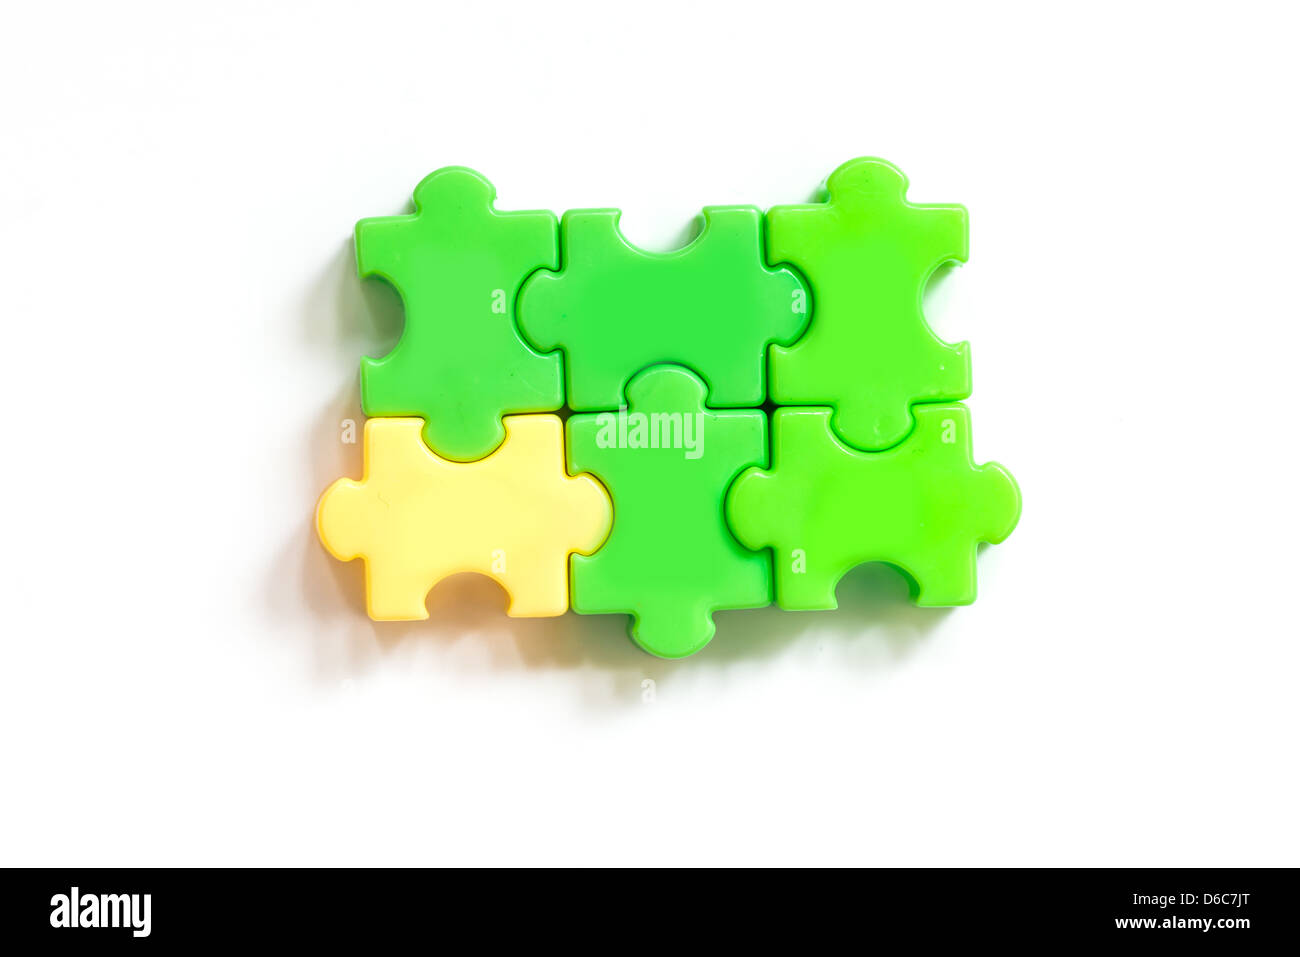 Odd one out - Stock Image